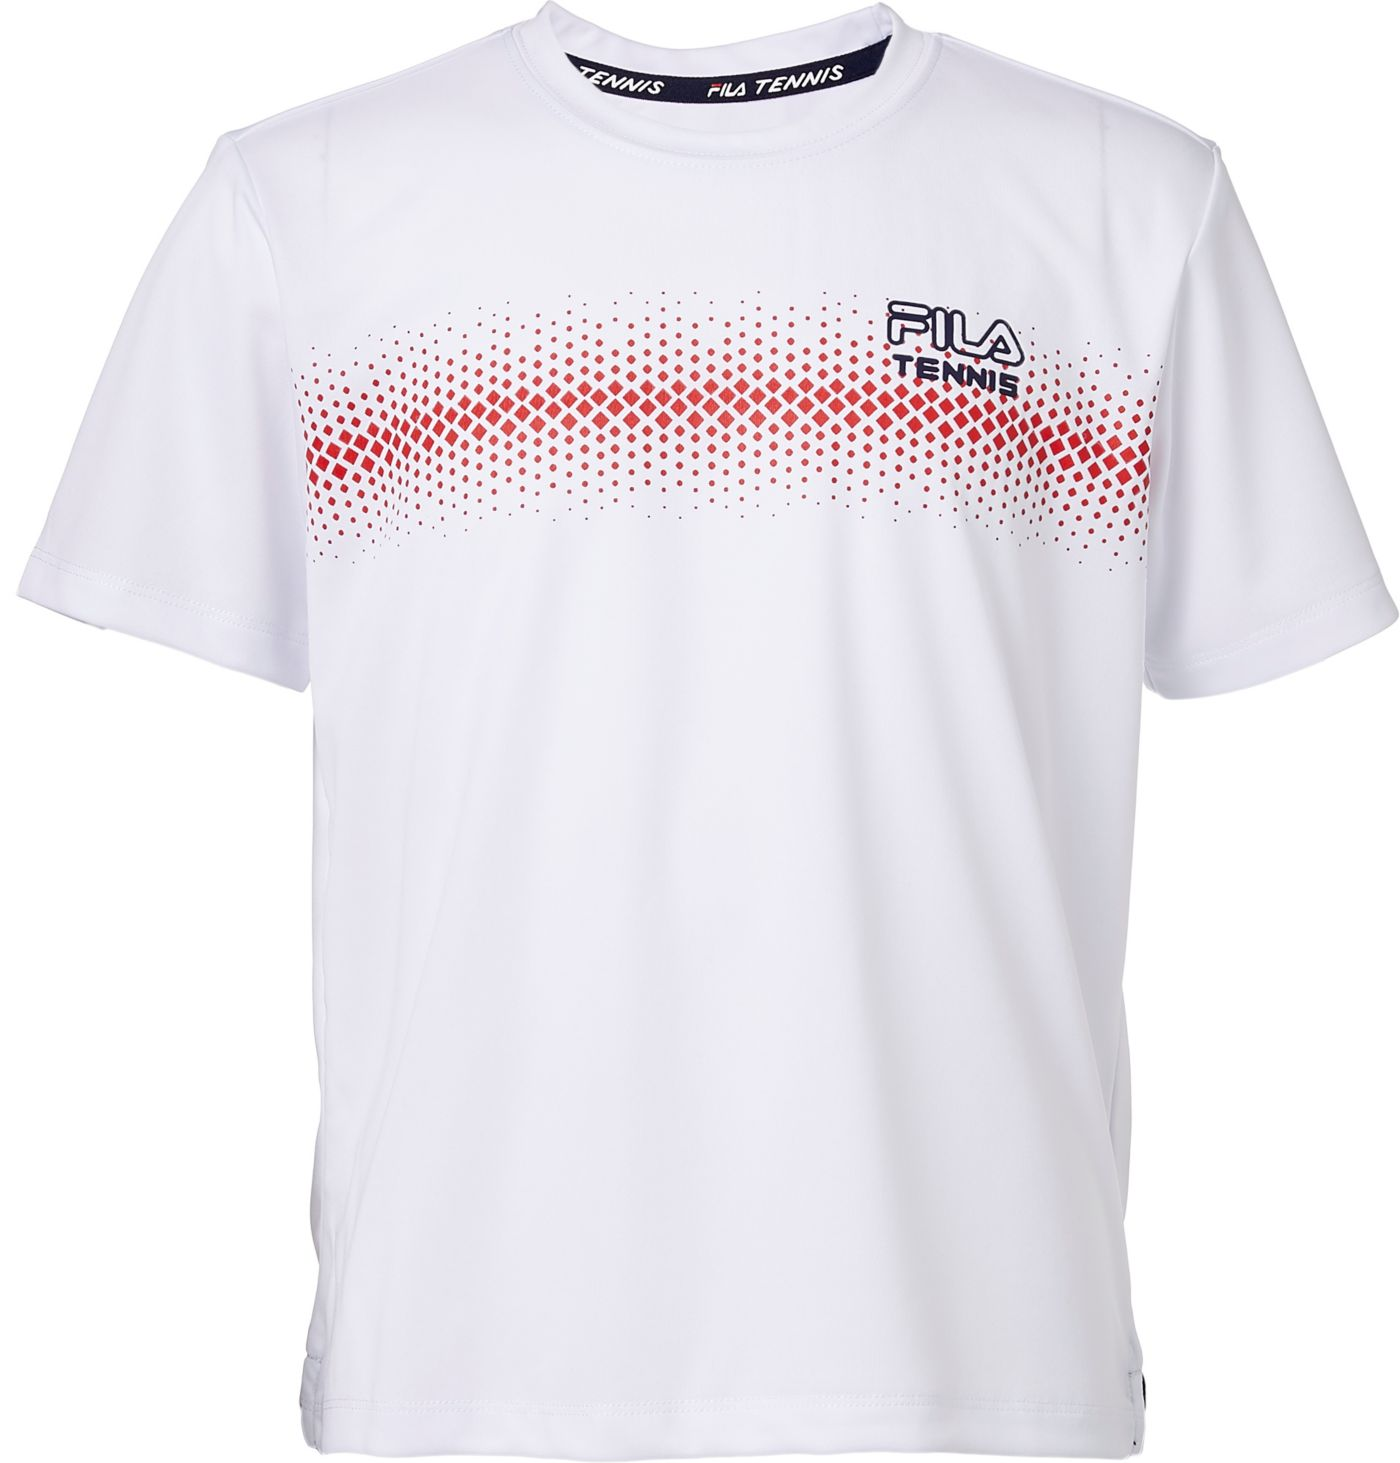 Fila Boys' Core Dotted Tennis T-Shirt